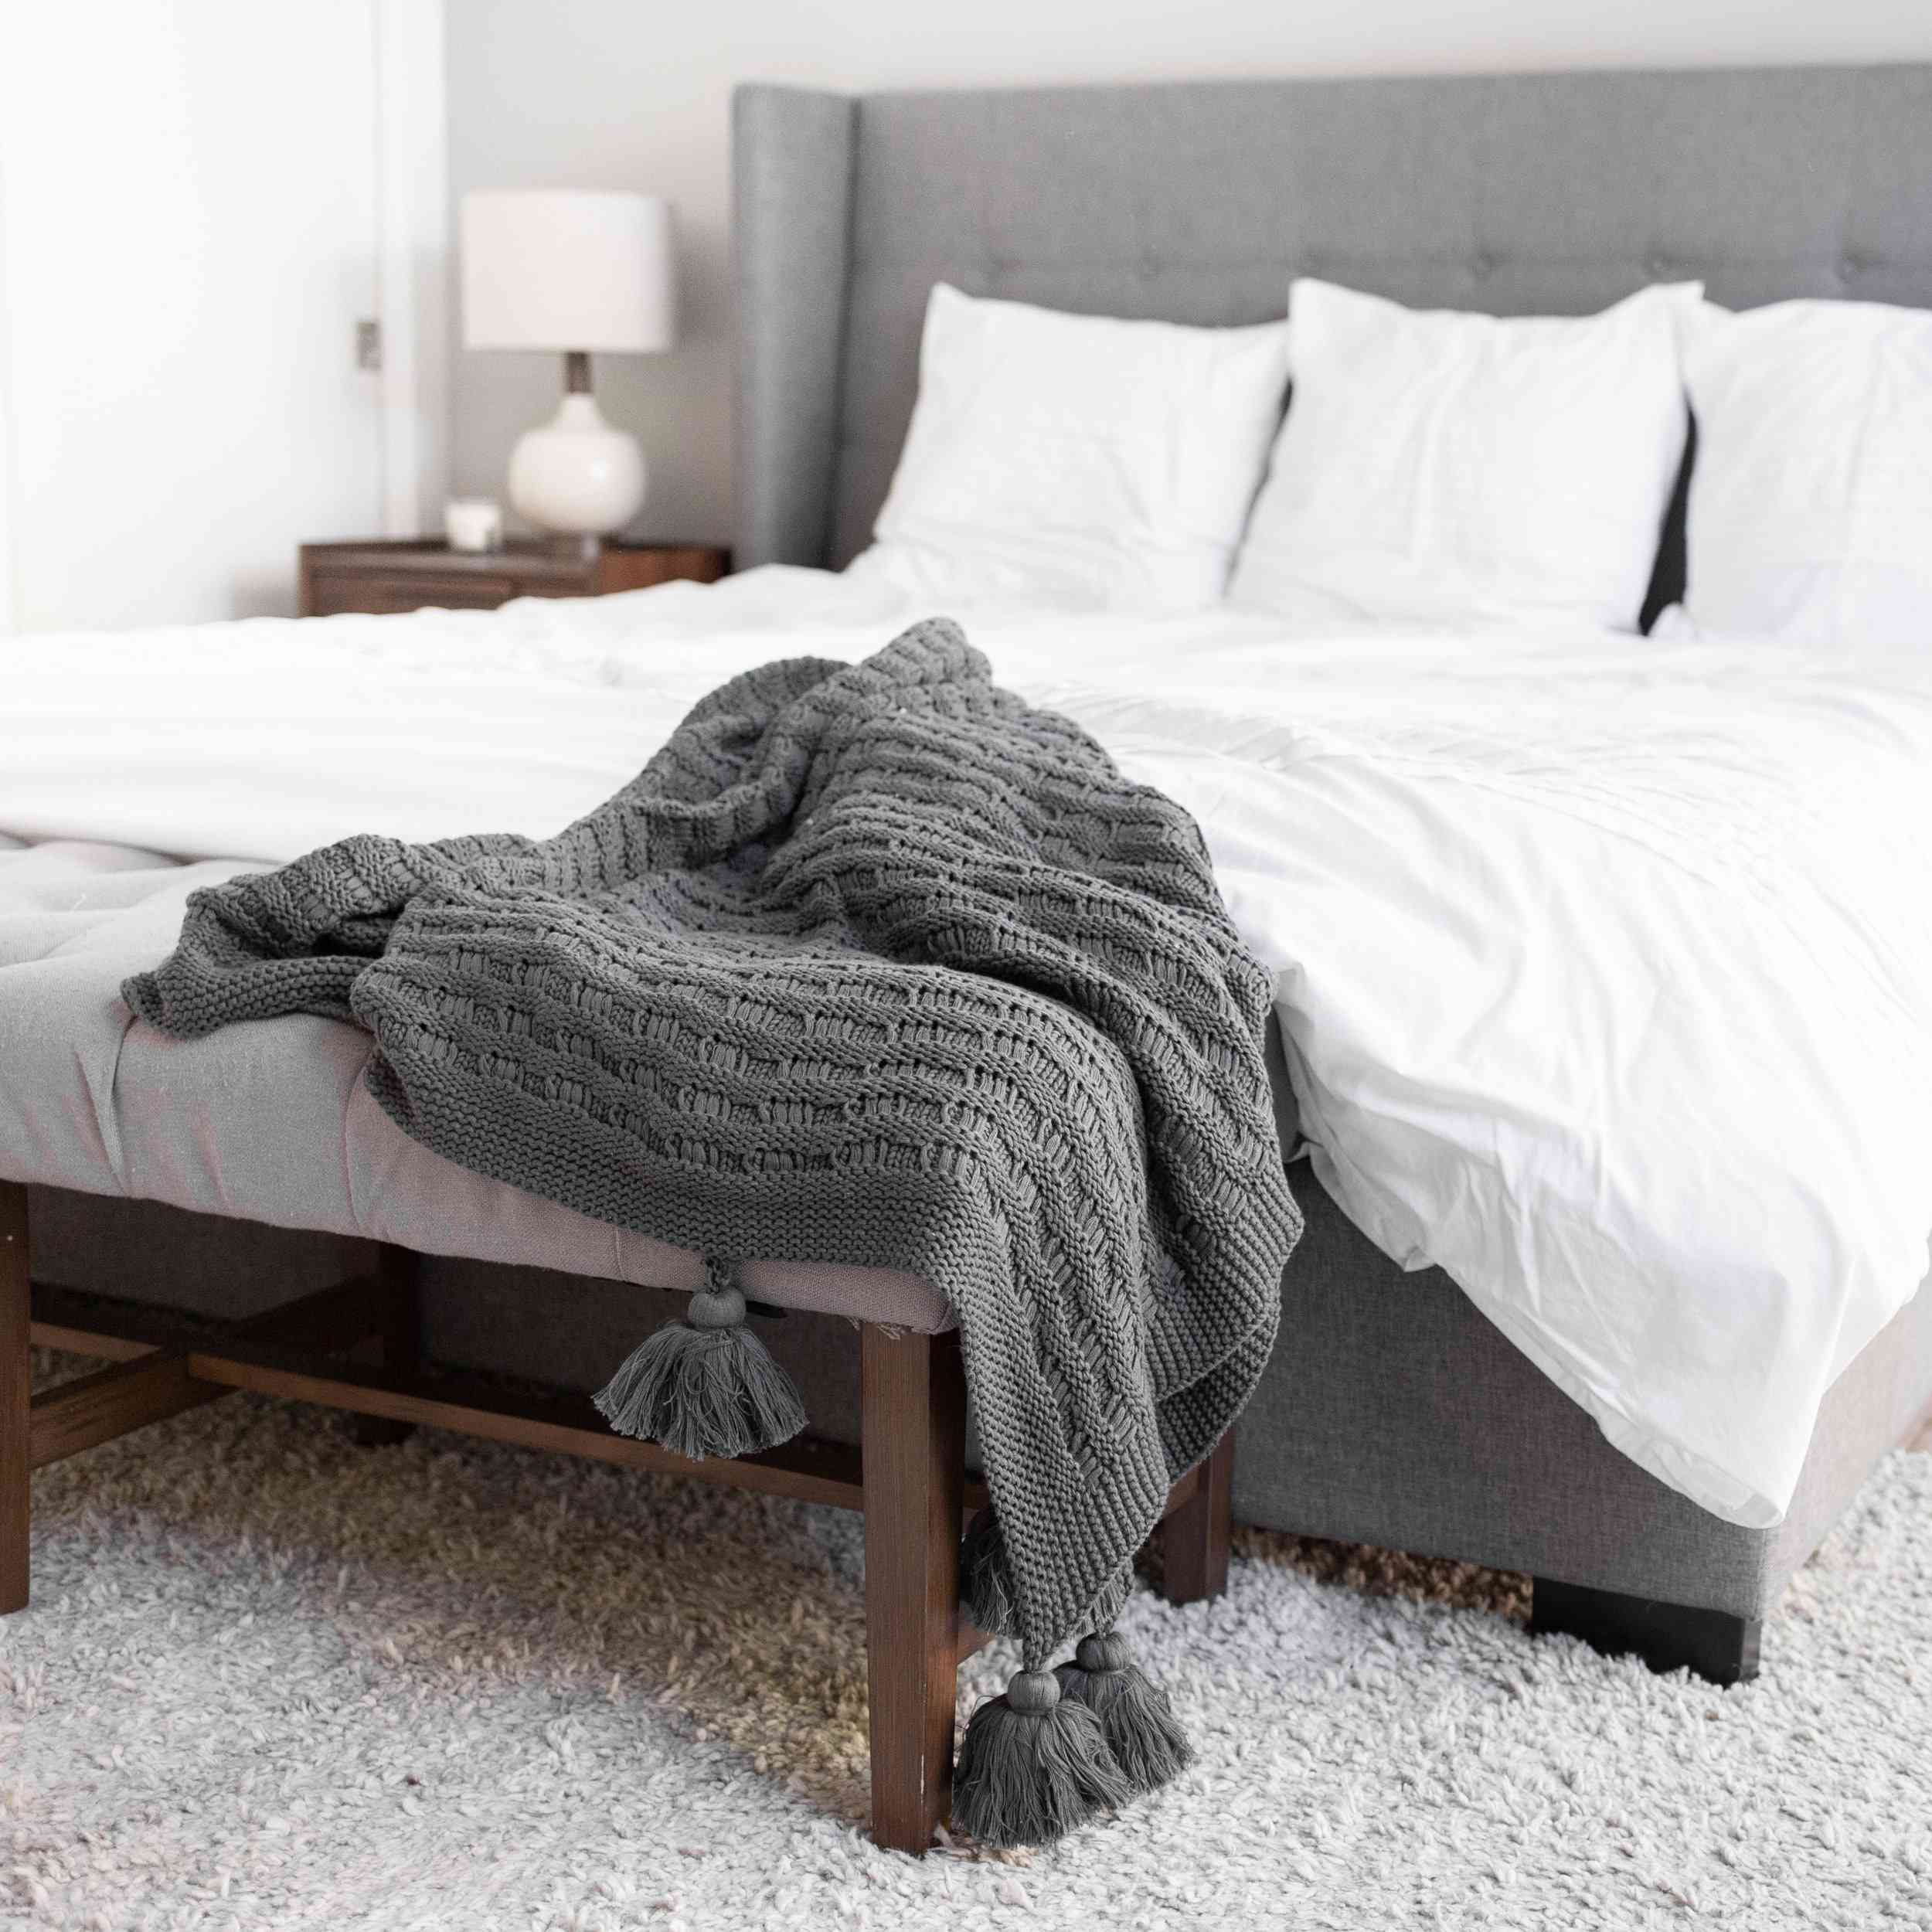 Domain by Laura Hodges Studio Organic Cotton Knit Throw Blanket